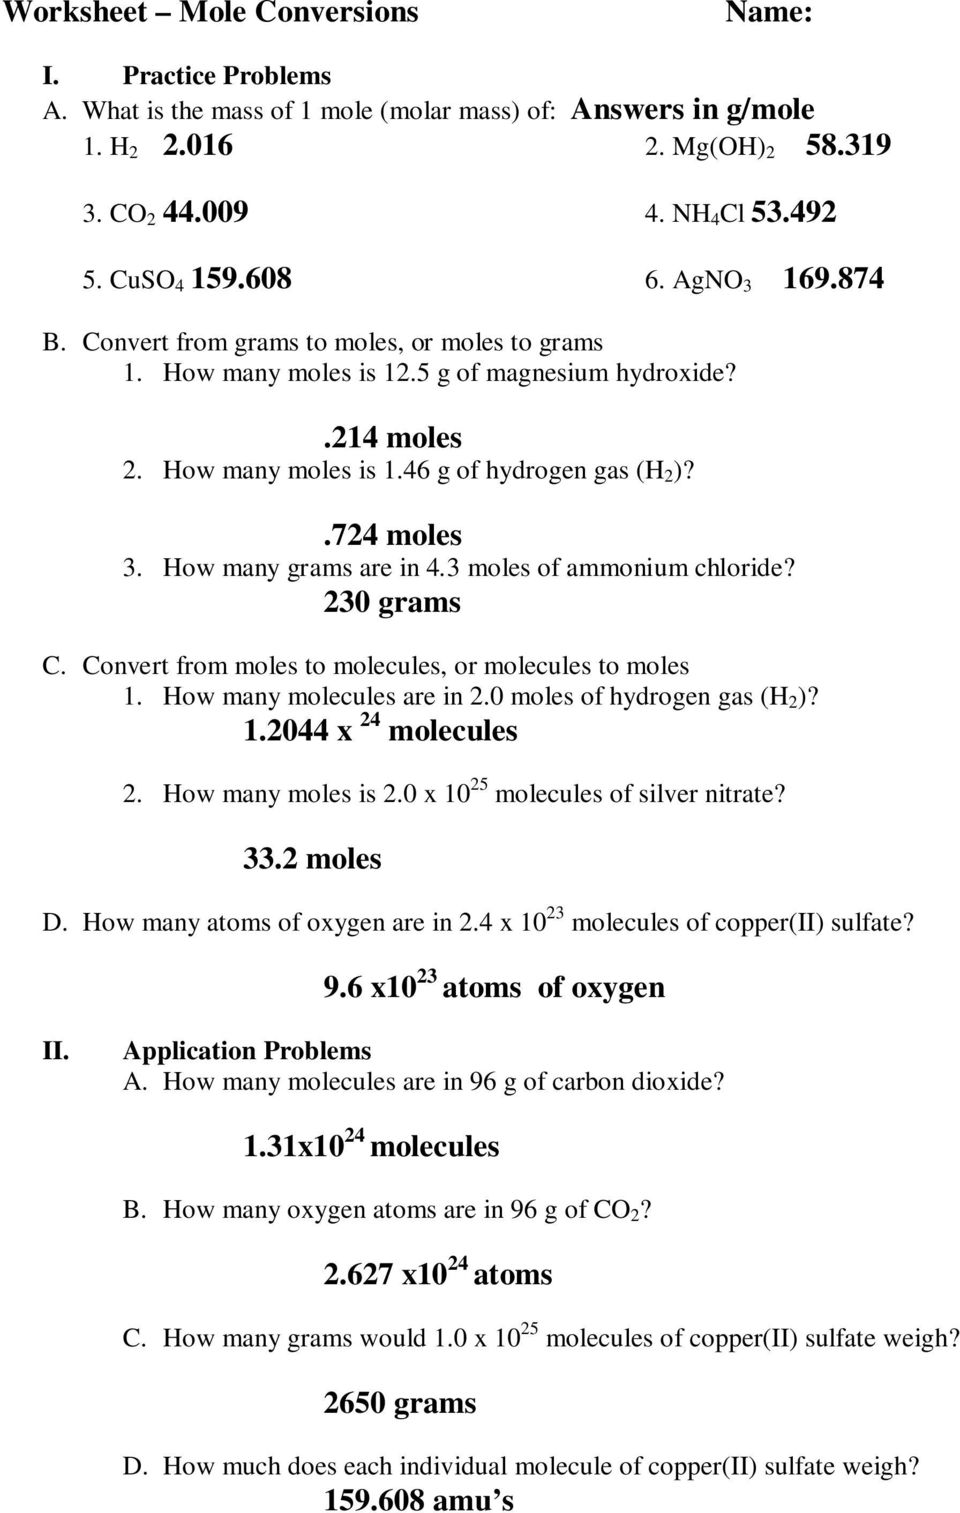 Printables Chemistry A Study Of Matter Worksheet Answers chemistry a study of matter worksheet mole problems how many grams are in 4 3 moles ammonium chloride 230 c convert molecules and answer